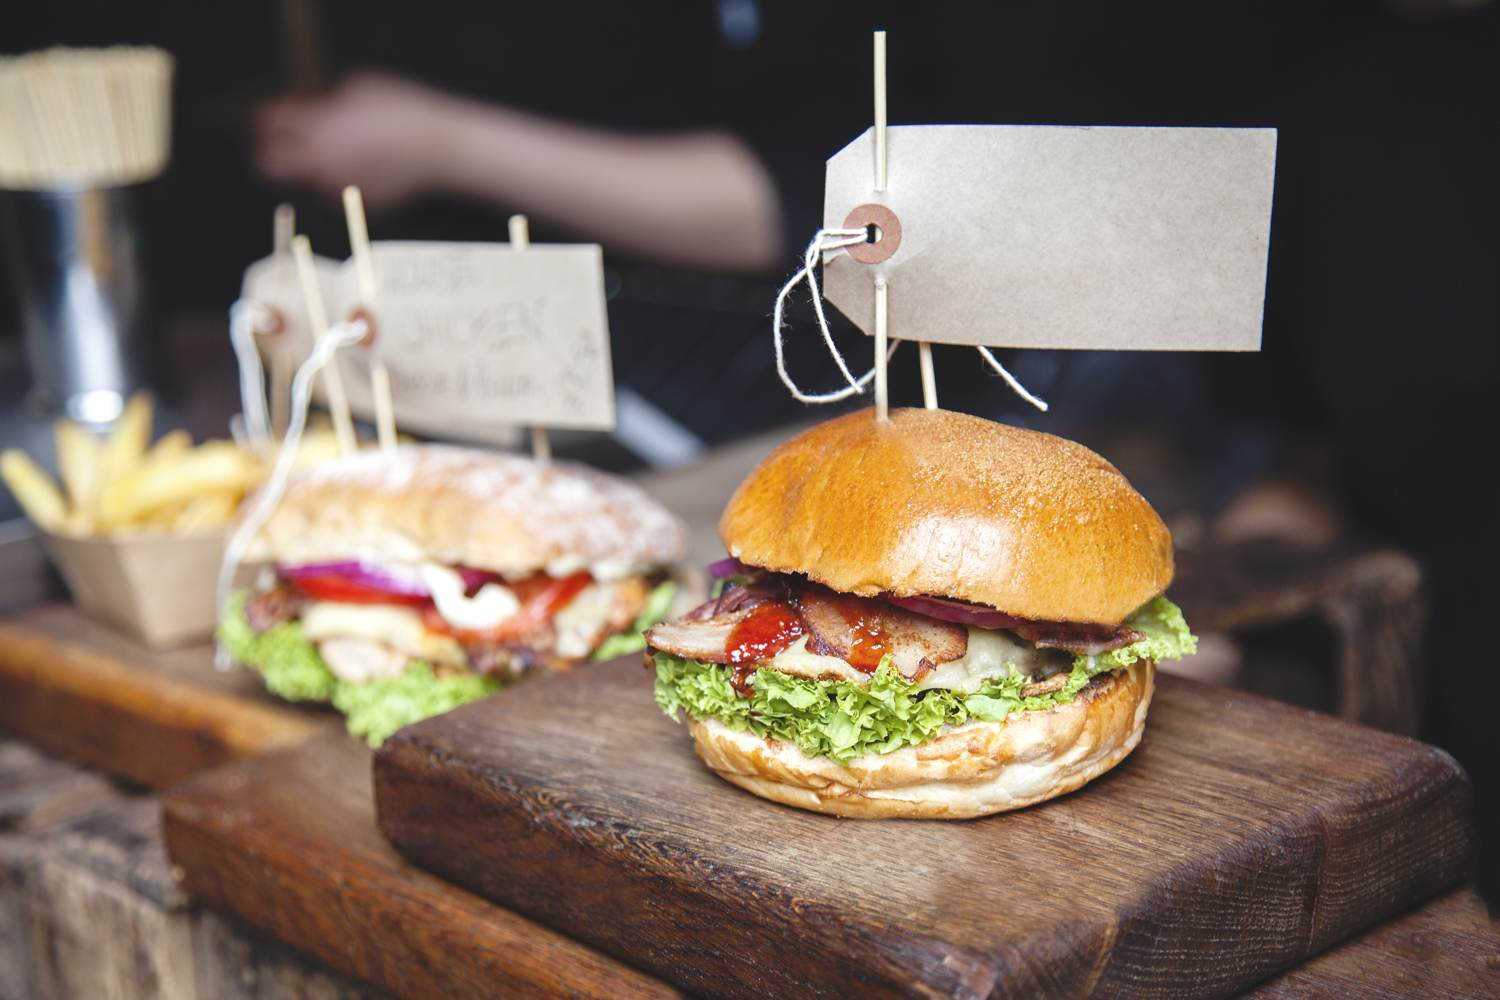 Street food burger speared with stick that has a blank price tag attached, on a wooden board, another burger and a portion of chips in the background